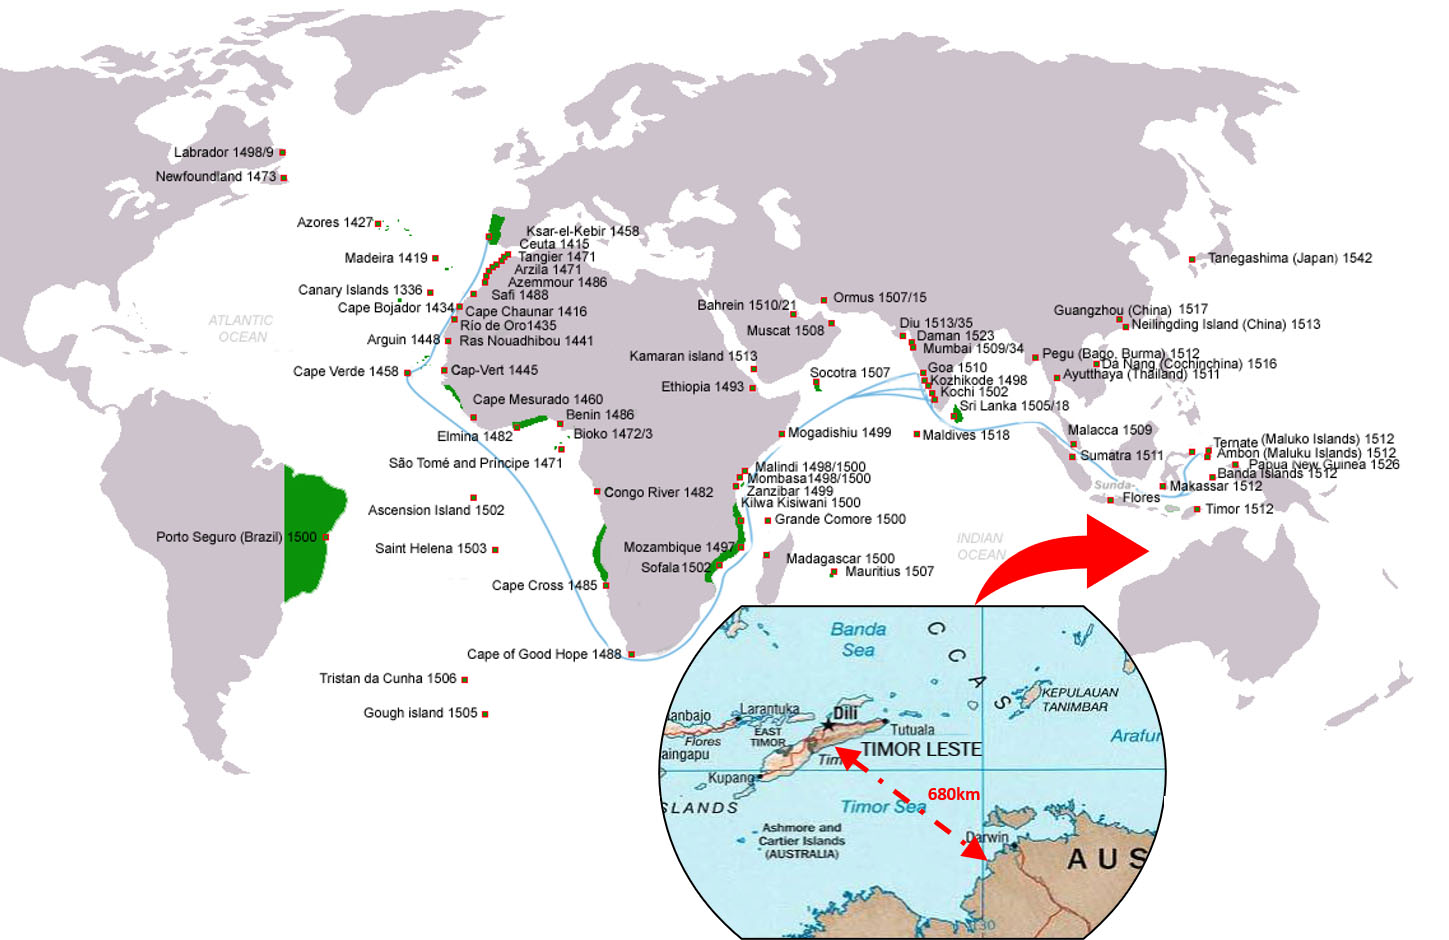 Portuguese maritime exploration from 1400 to 1550.